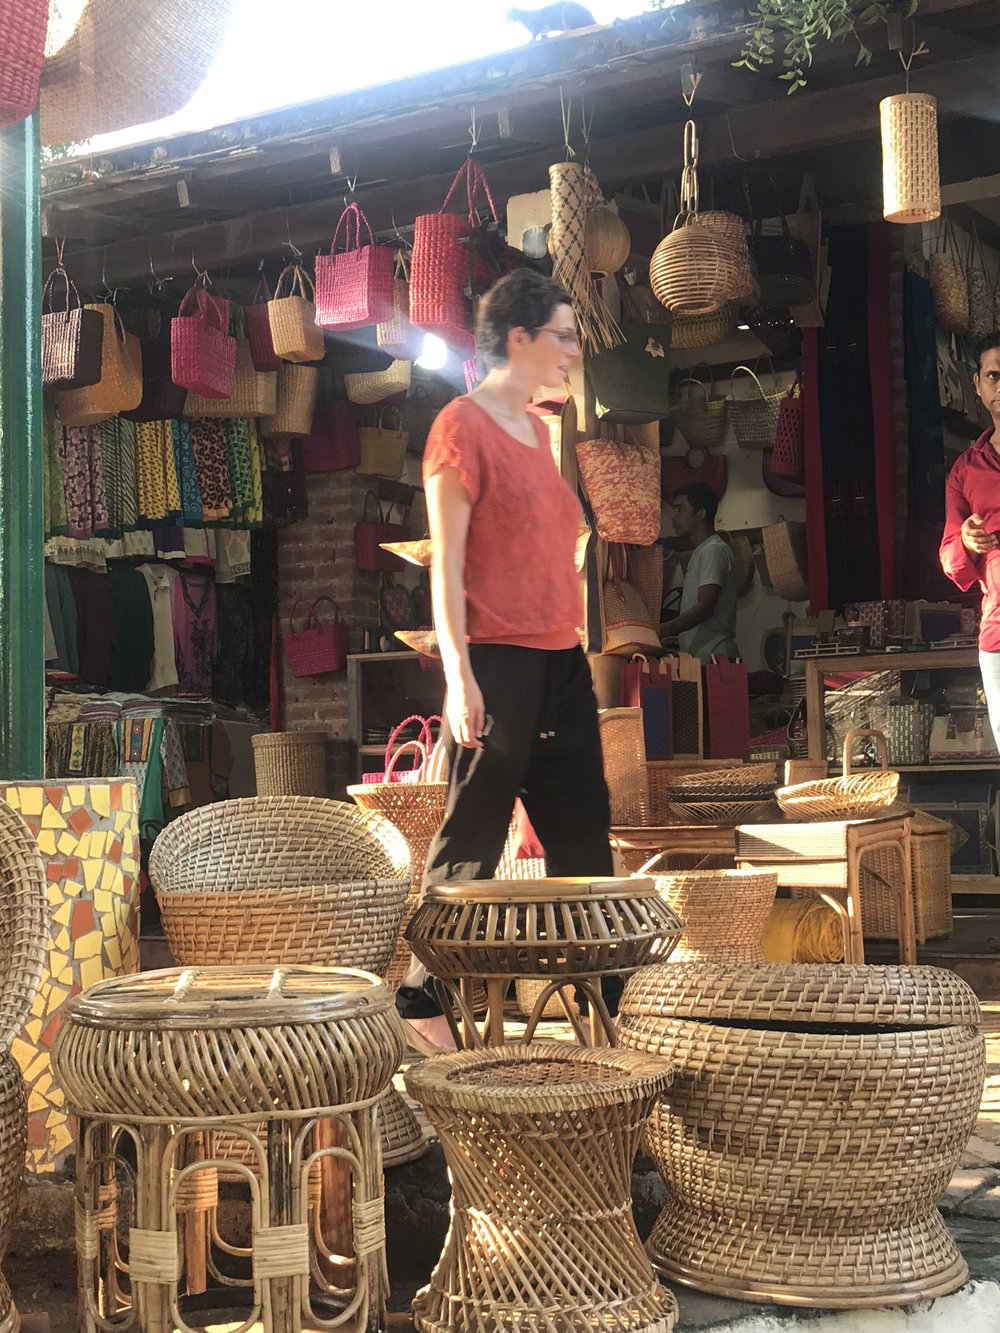 Baskets at the Dilli Haat Market